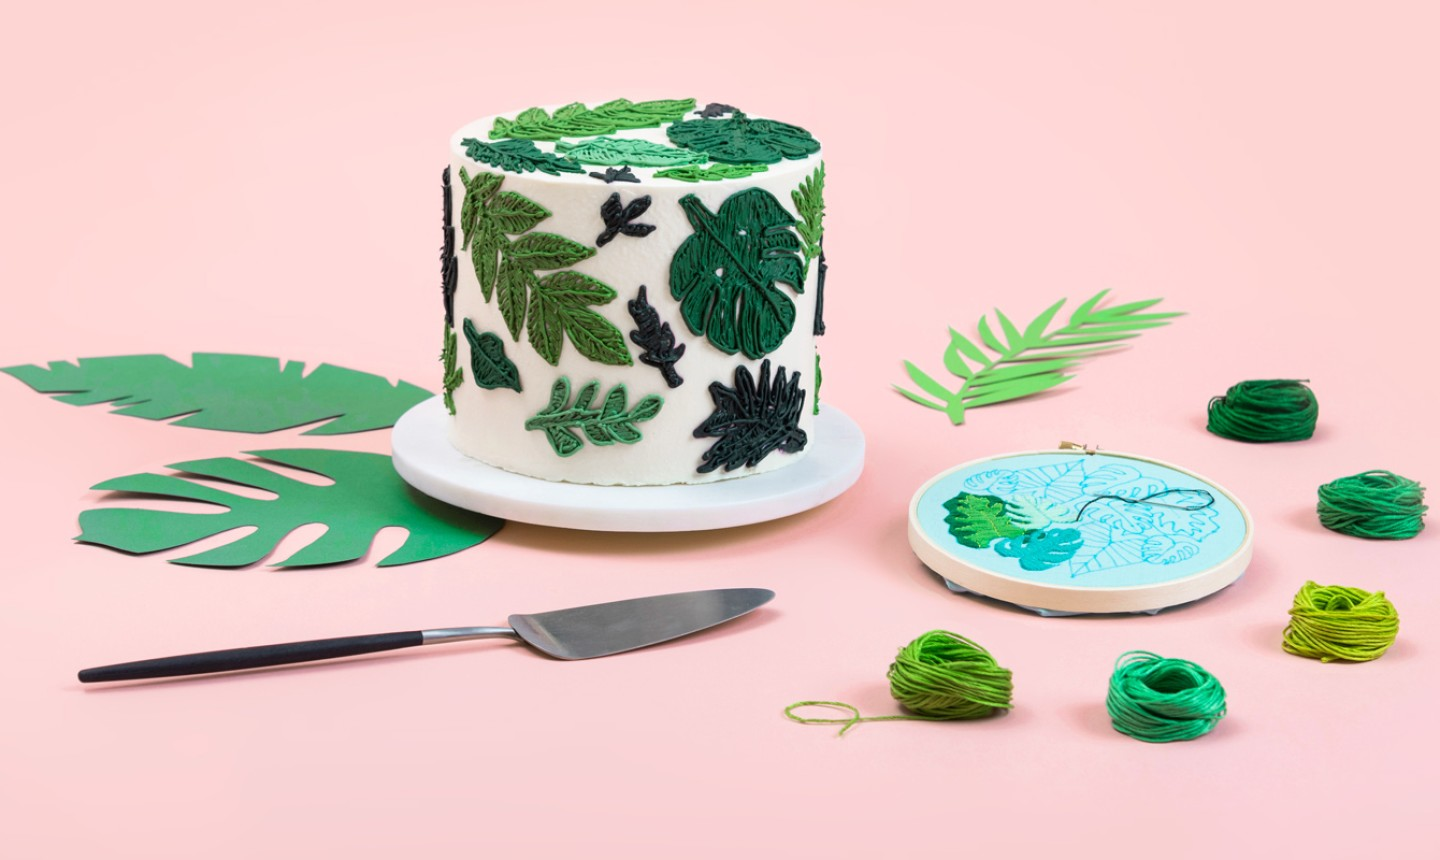 embroidered plant cake